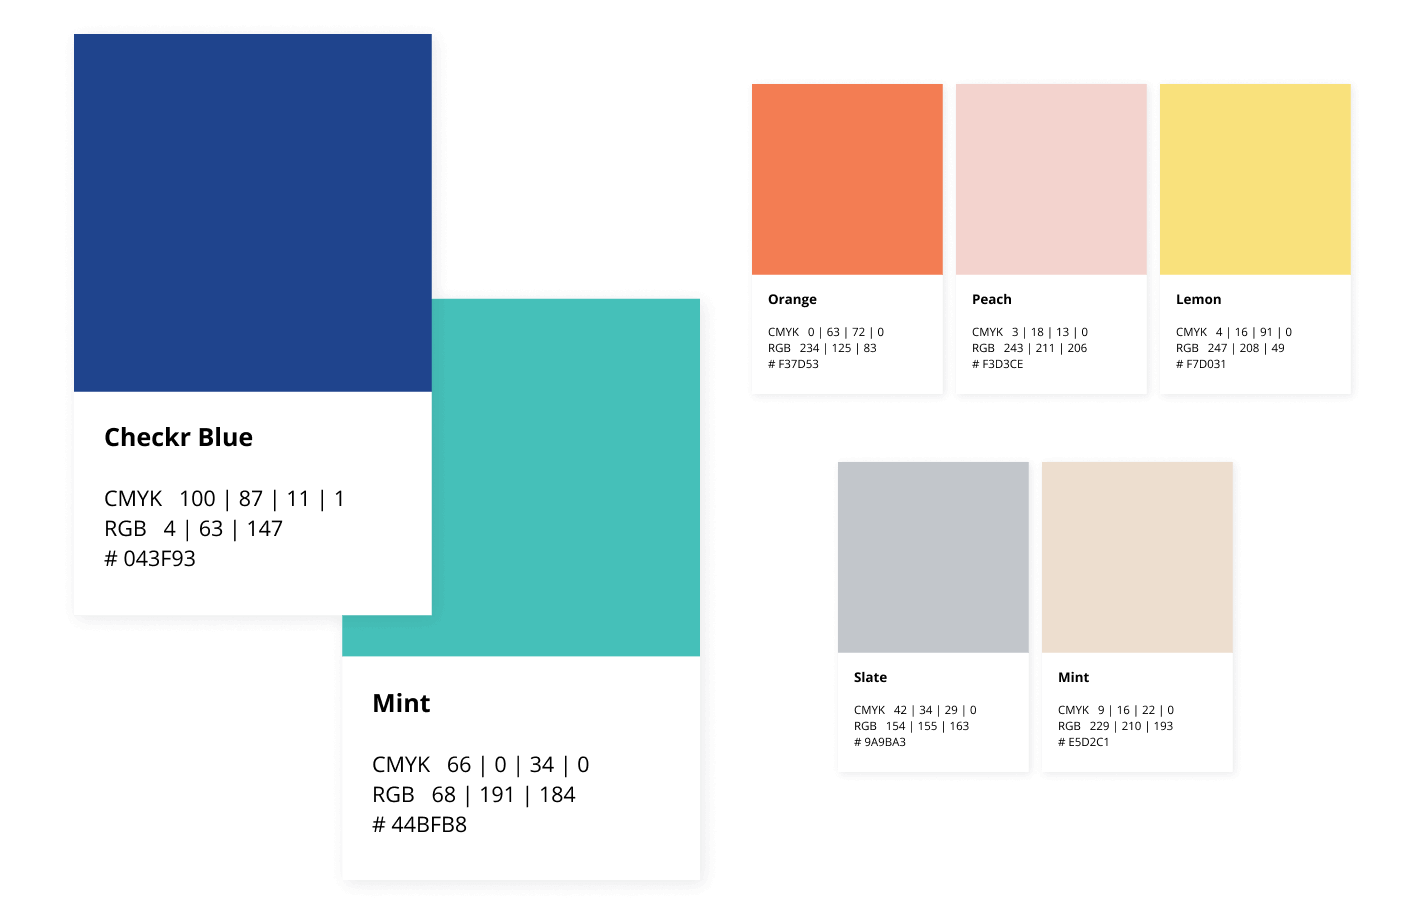 Checkr Brand Colors